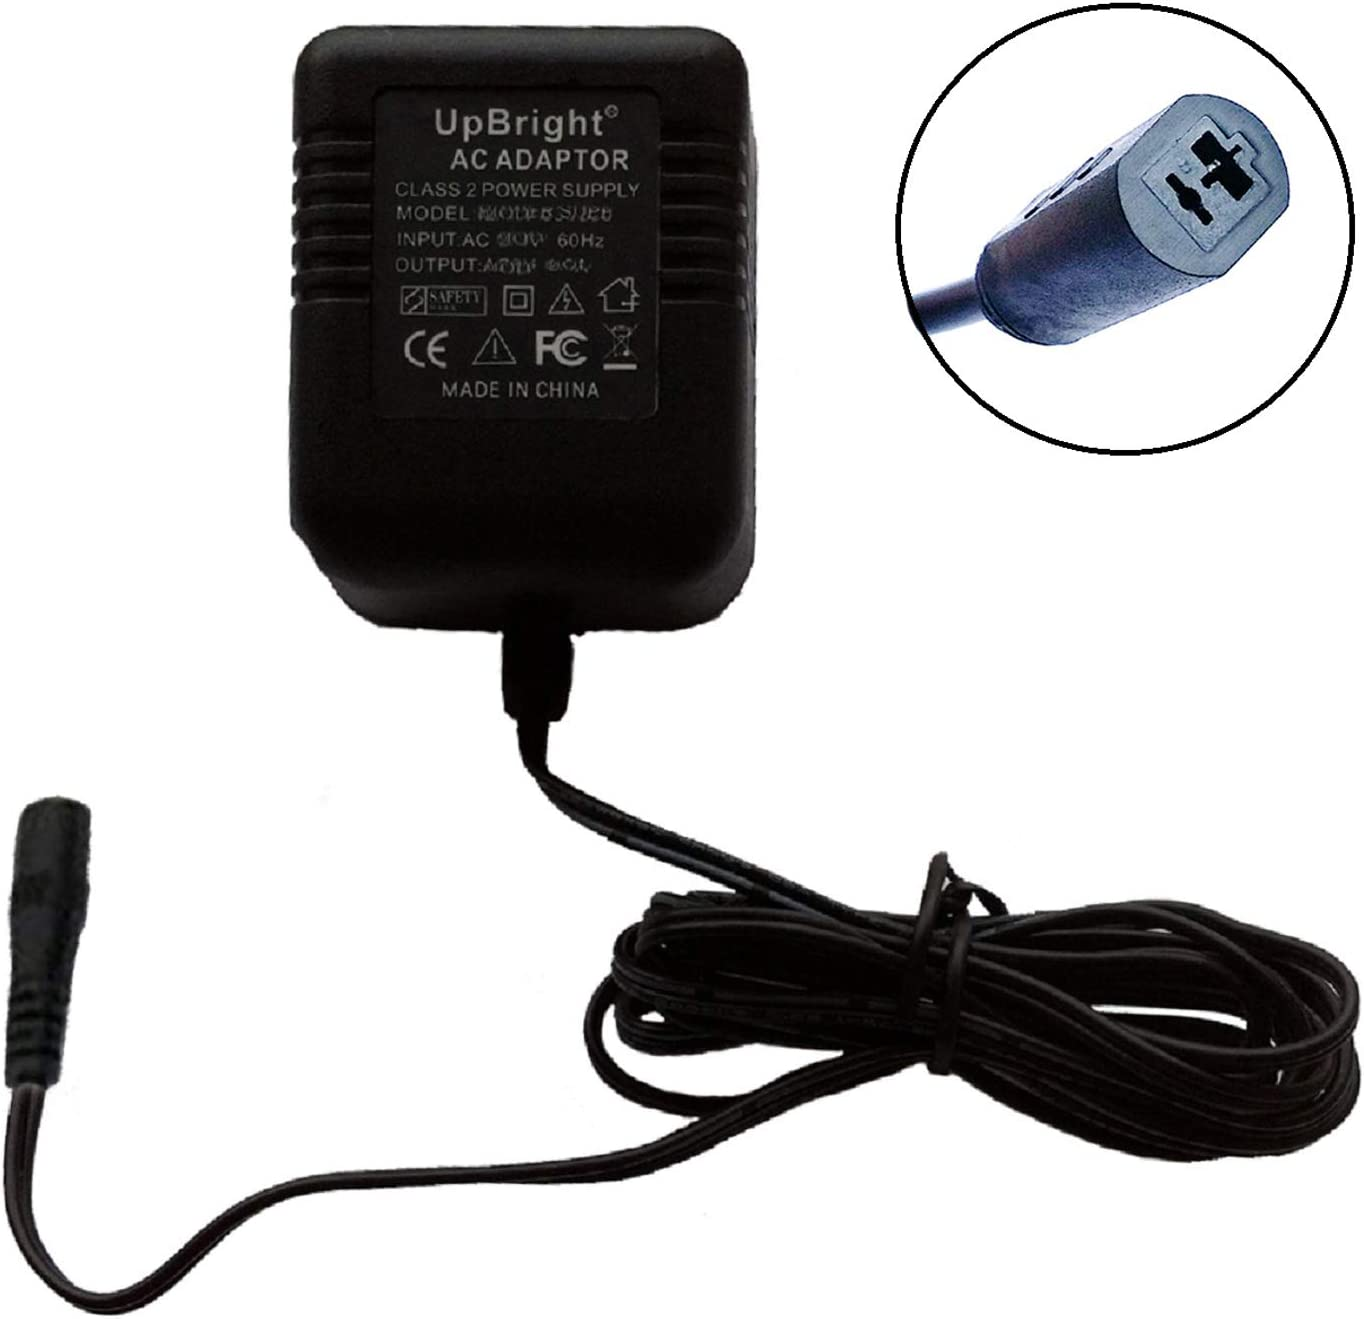 UpBright 24V AC Adapter Replacement for TDC Power DA-20-24 DA2024 TDCpower 24VAC 0.83A 20VA Class 2 Transformer Power Supply Cord Charger PSU (w/ 2-Prong Connector fits IKEA & Other Lights Light Lamp)